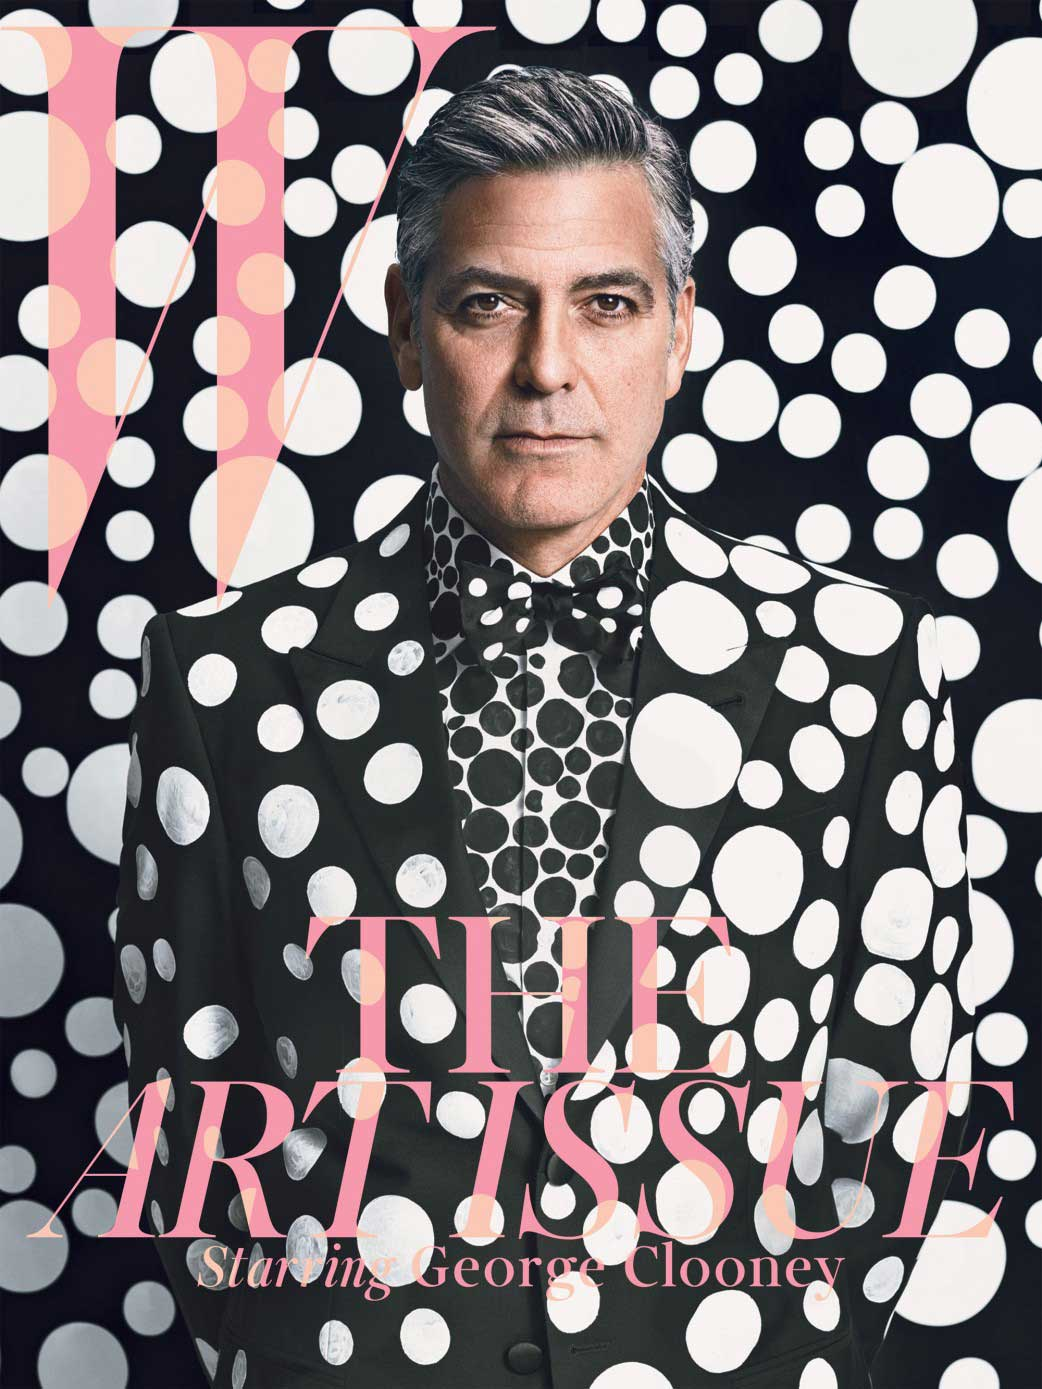 Spot The Star: George Clooney x Yayoi Kusama for W Magazine December 2013.